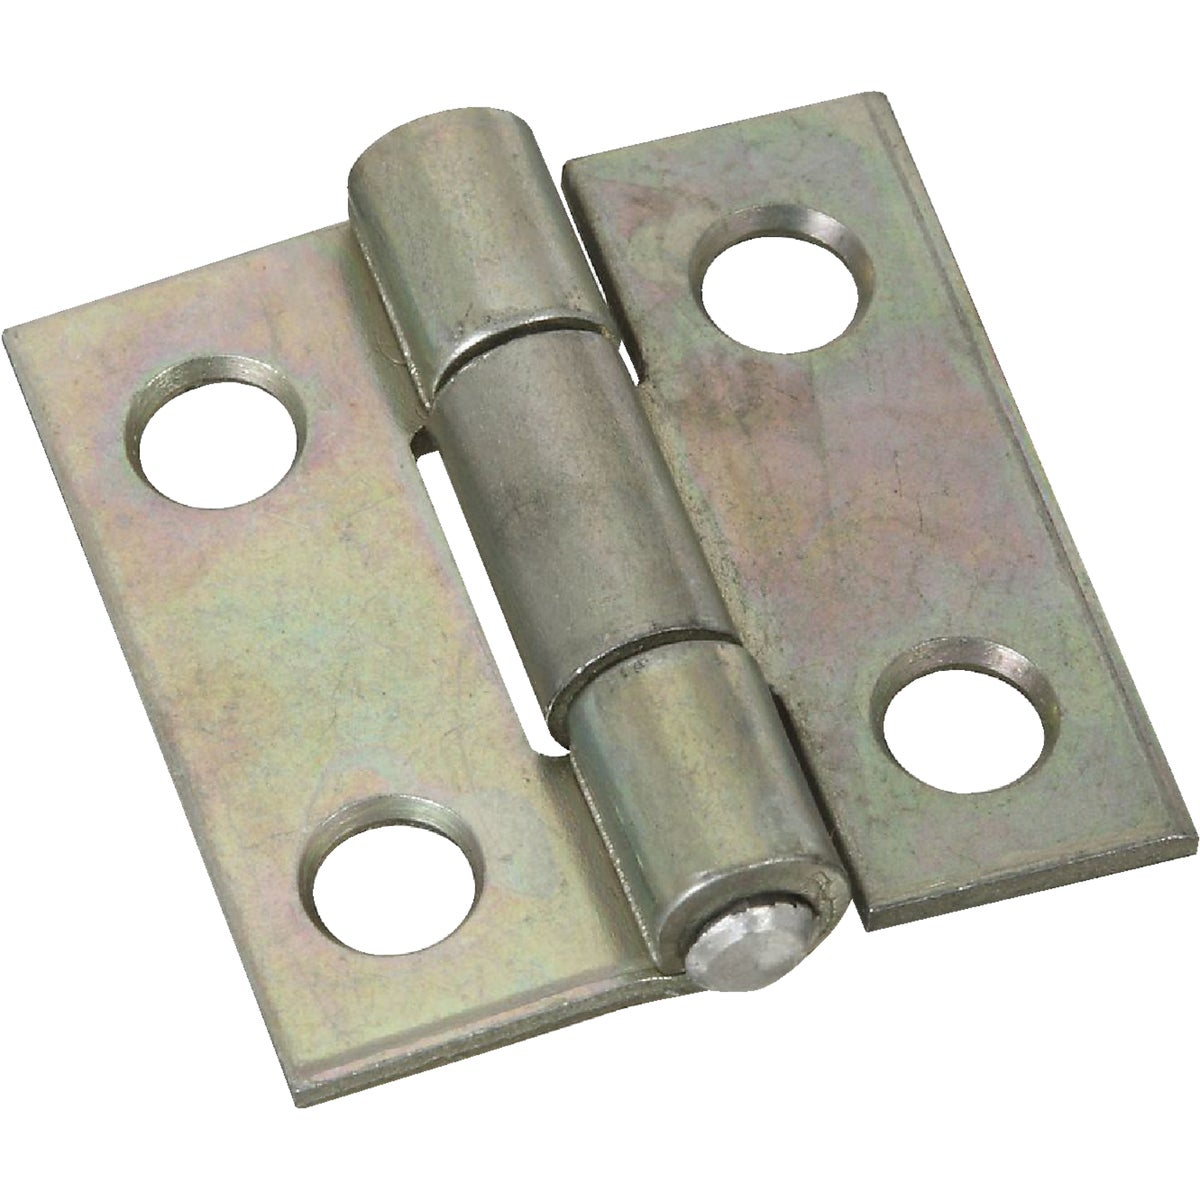 "1"" ZINC PIN HINGE - N145920 by National Mfg Co"